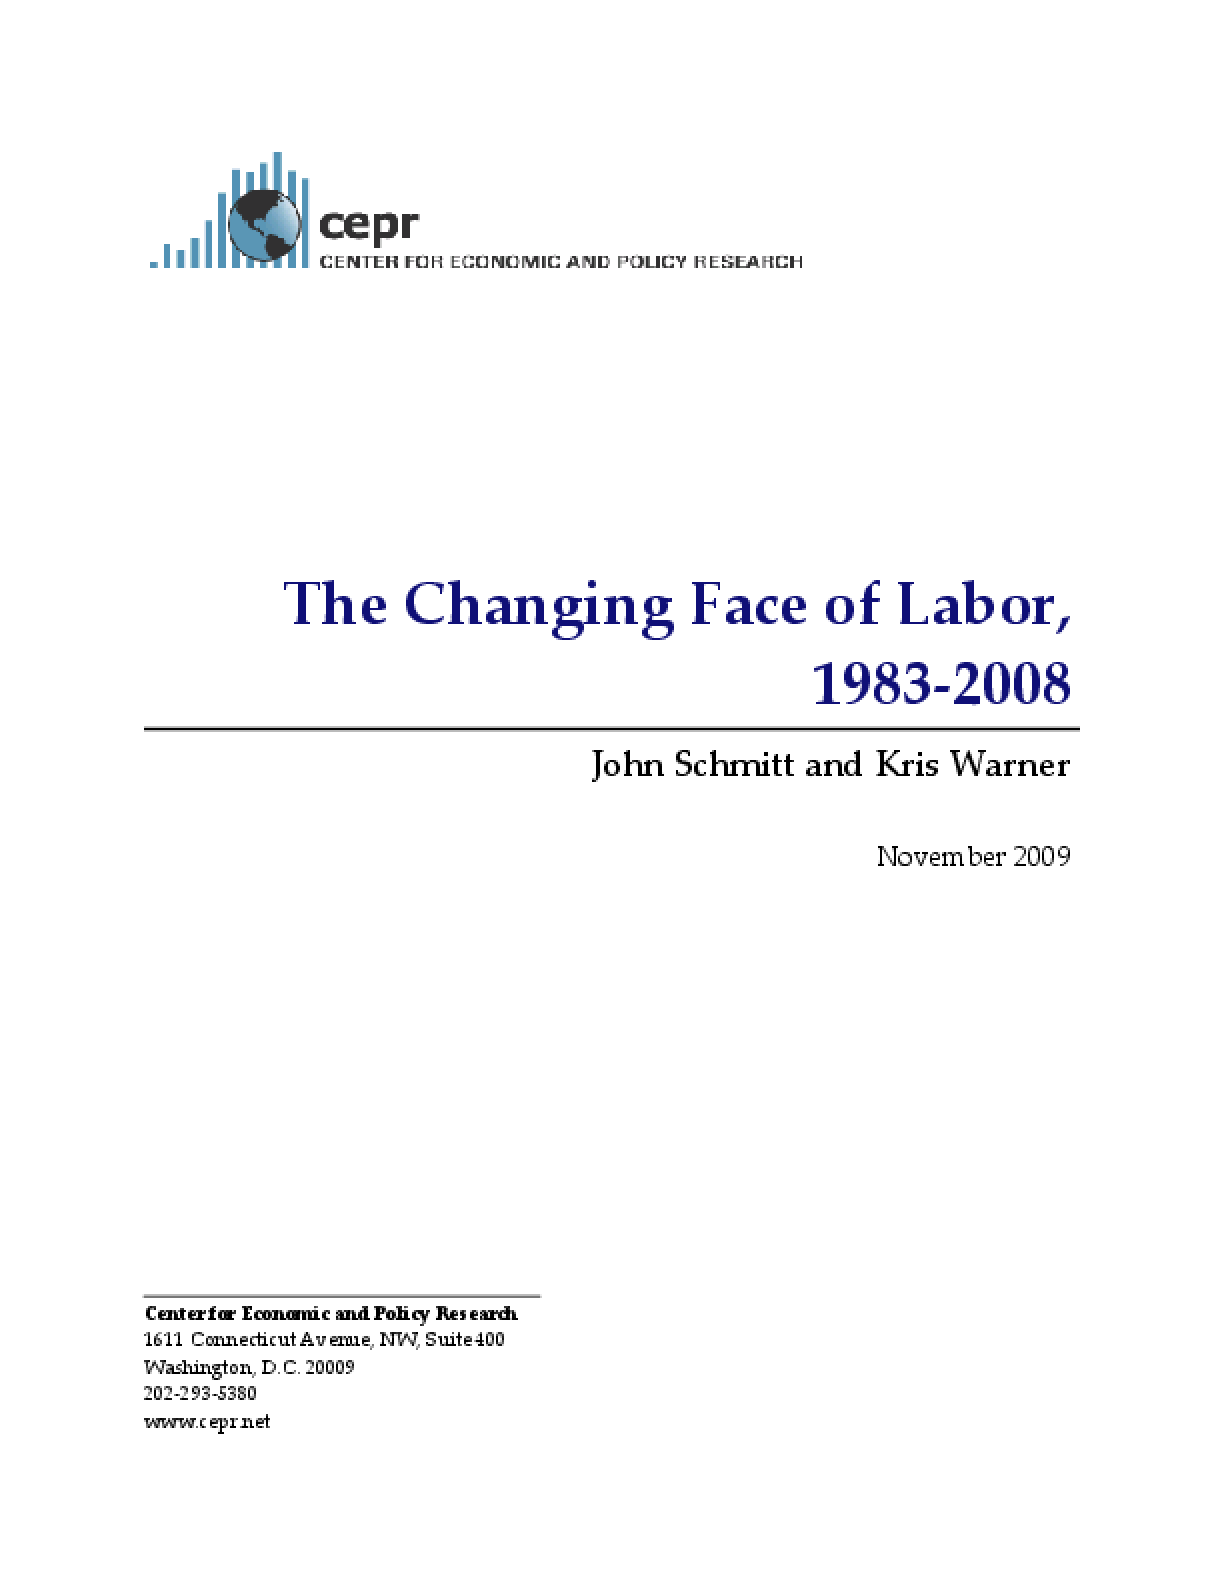 The Changing Face of Labor, 1983-2008